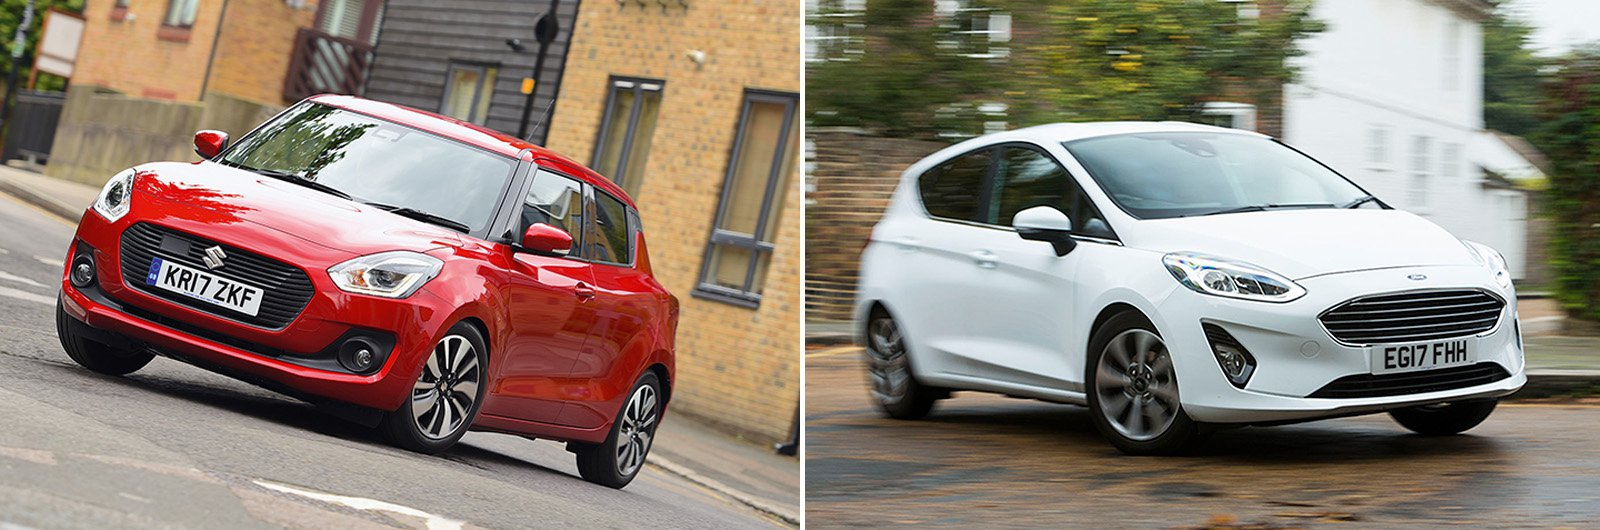 New Skoda Fabia vs used Seat Ibiza – alternatives